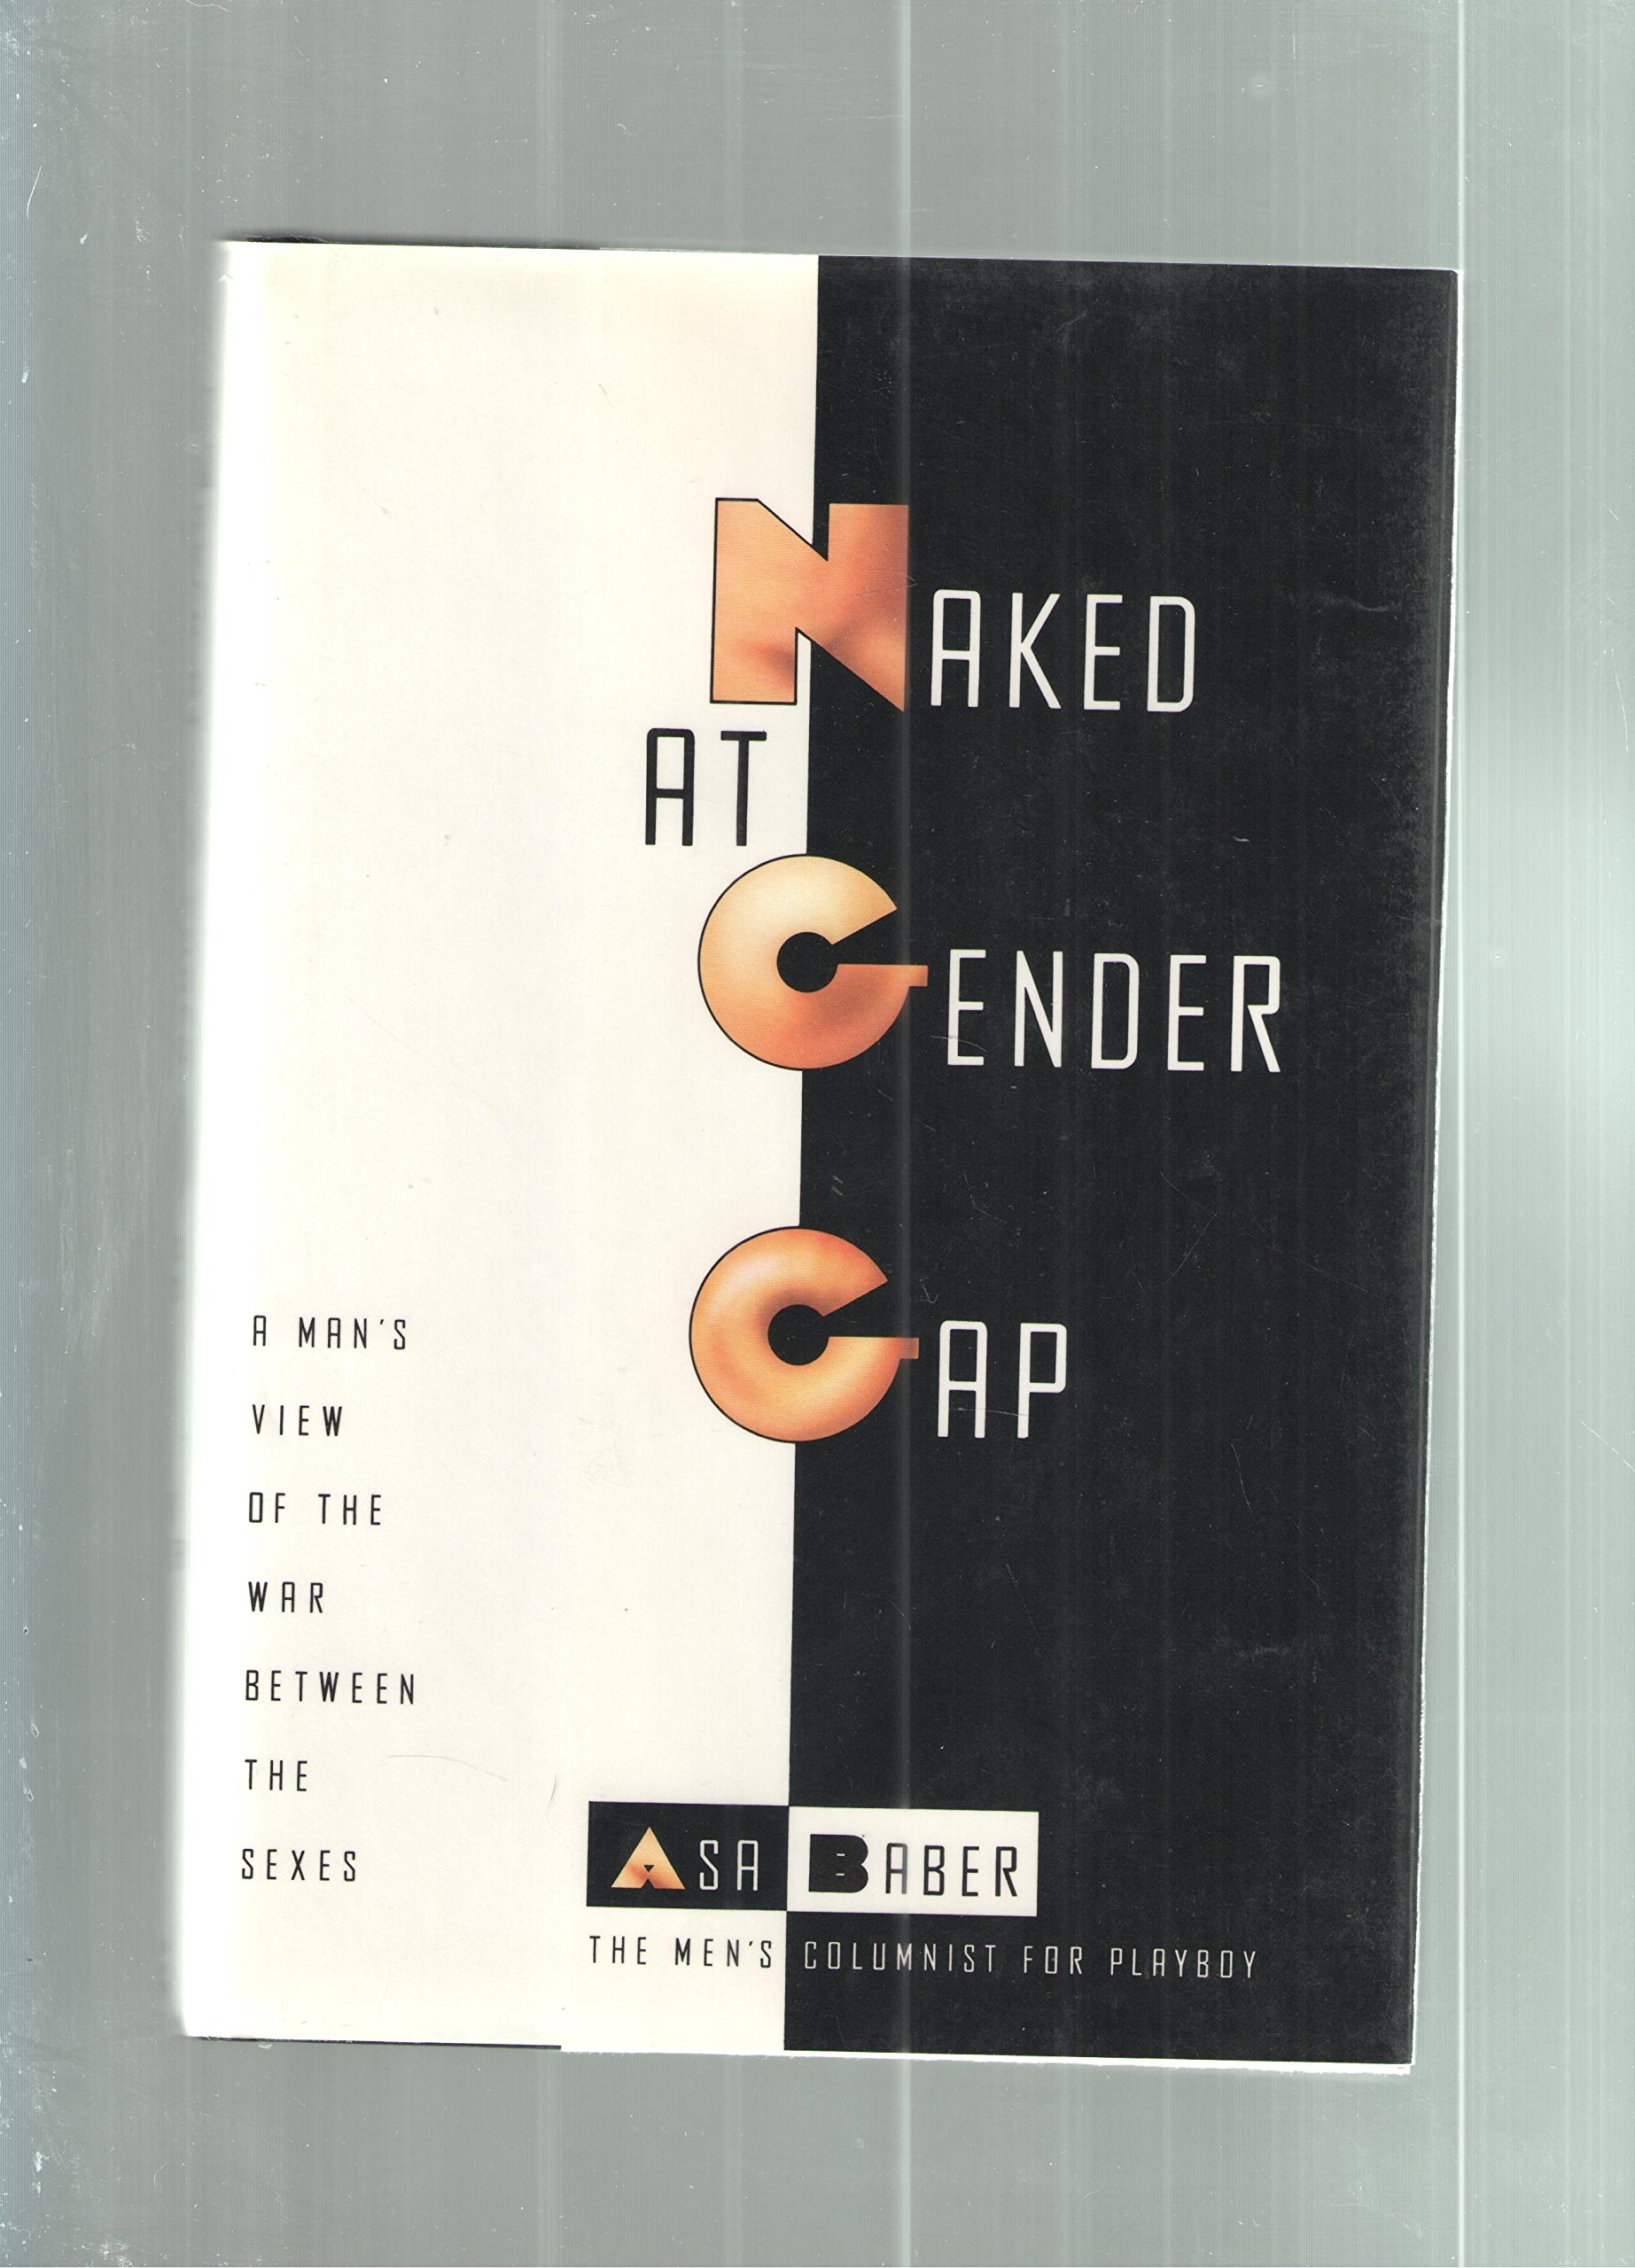 Naked at Gender Gap: A Man's View of the War Between the Sexes by Asa Baber